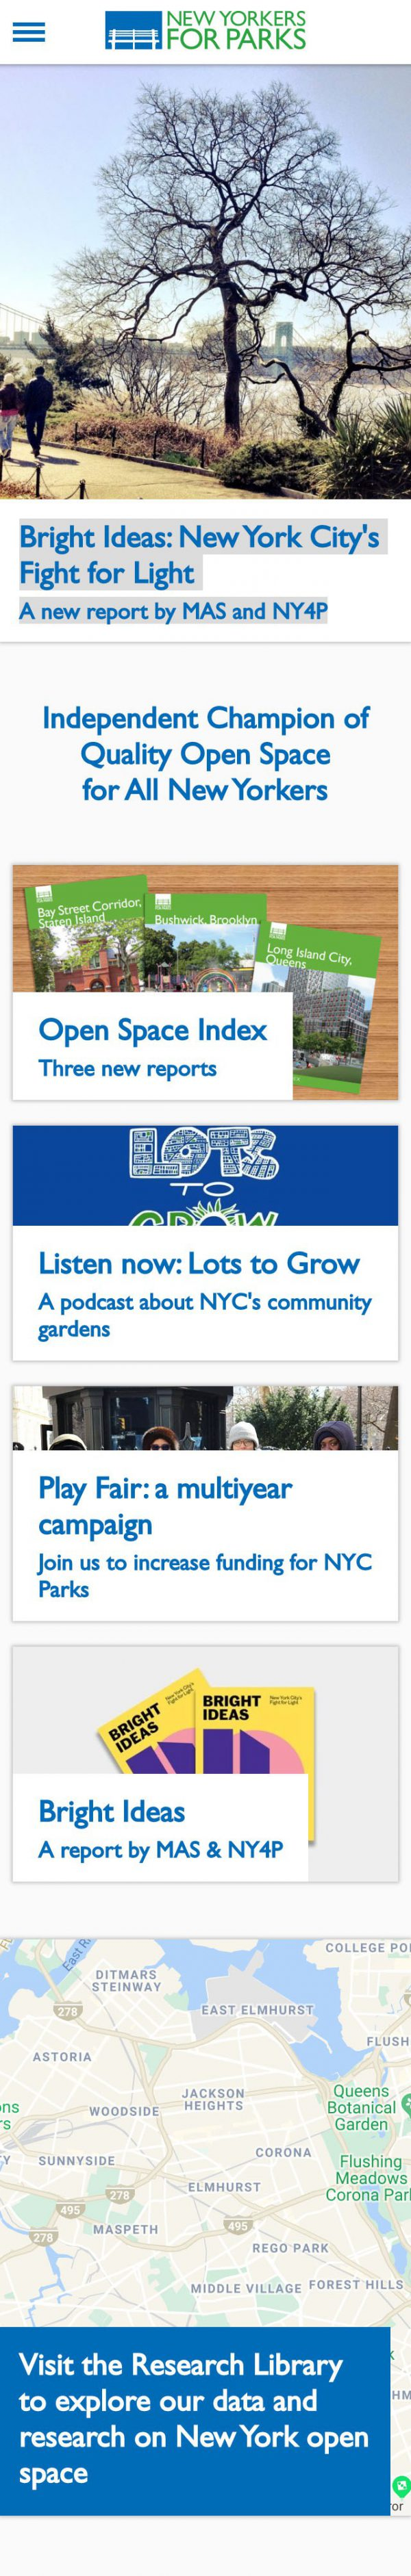 Screenshot of the New Yorkers for Parks website's homepage